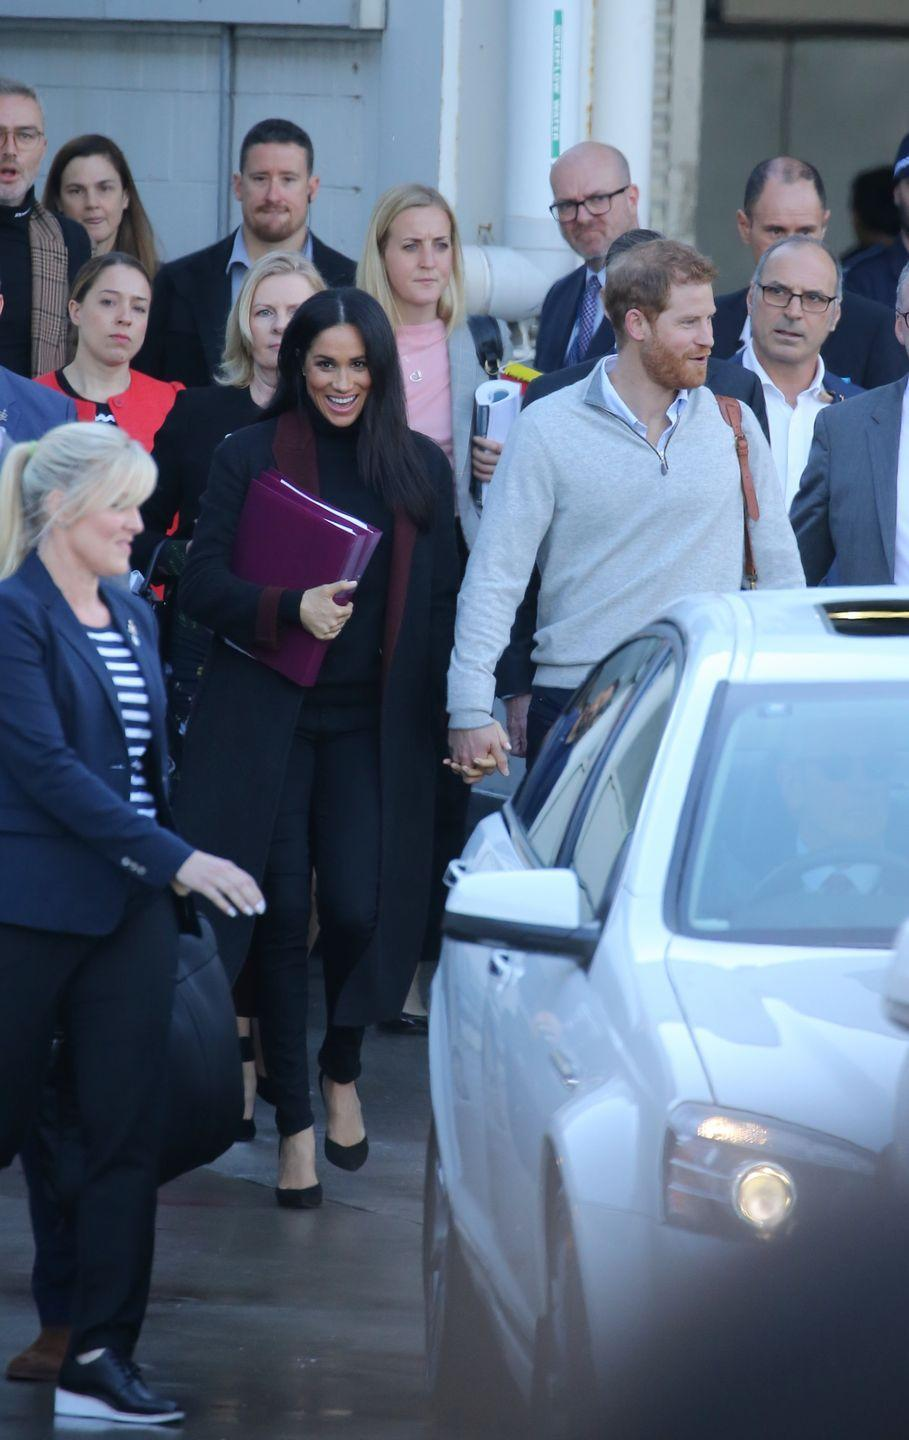 "<p>Prince Harry and Meghan Markle touched down in Sydney for <a href=""https://www.townandcountrymag.com/society/tradition/a21273366/meghan-markle-prince-harry-first-royal-tour-2018/"" rel=""nofollow noopener"" target=""_blank"" data-ylk=""slk:their royal tour"" class=""link rapid-noclick-resp"">their royal tour </a>with some news to share: <a href=""https://www.townandcountrymag.com/society/tradition/a23773992/meghan-markle-pregnant-first-royal-baby-prince-harry/"" rel=""nofollow noopener"" target=""_blank"" data-ylk=""slk:the Duchess is pregnant!"" class=""link rapid-noclick-resp"">the Duchess is pregnant!</a> Meghan wore a black coat with a maroon trim for the occasion, with a black turtleneck and matching pants. </p>"